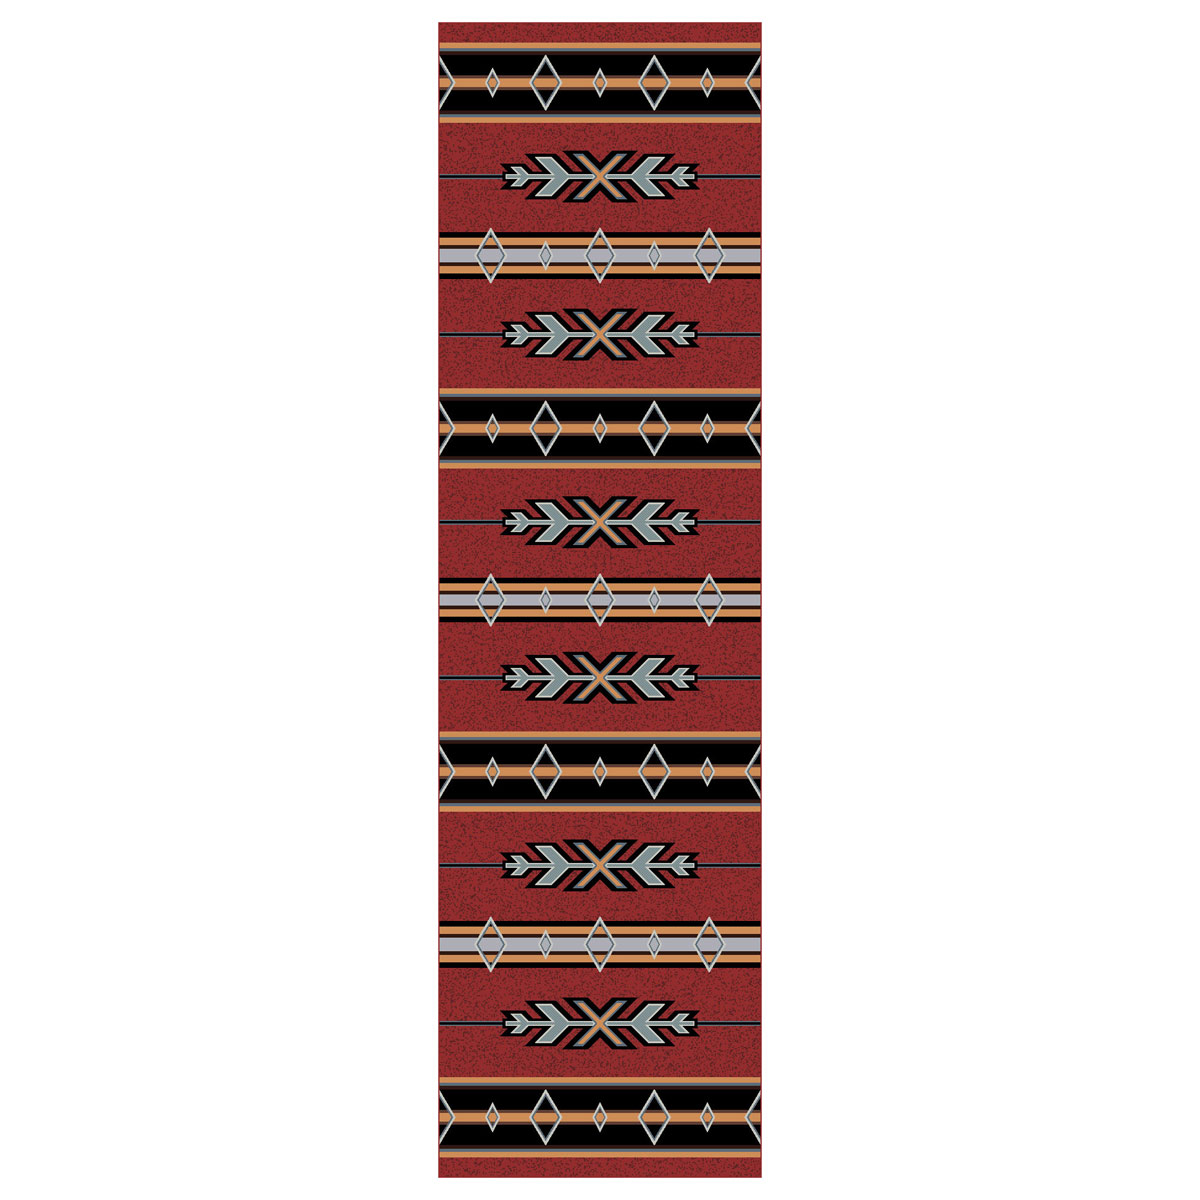 Tribal Fire Rug - 2 x 8